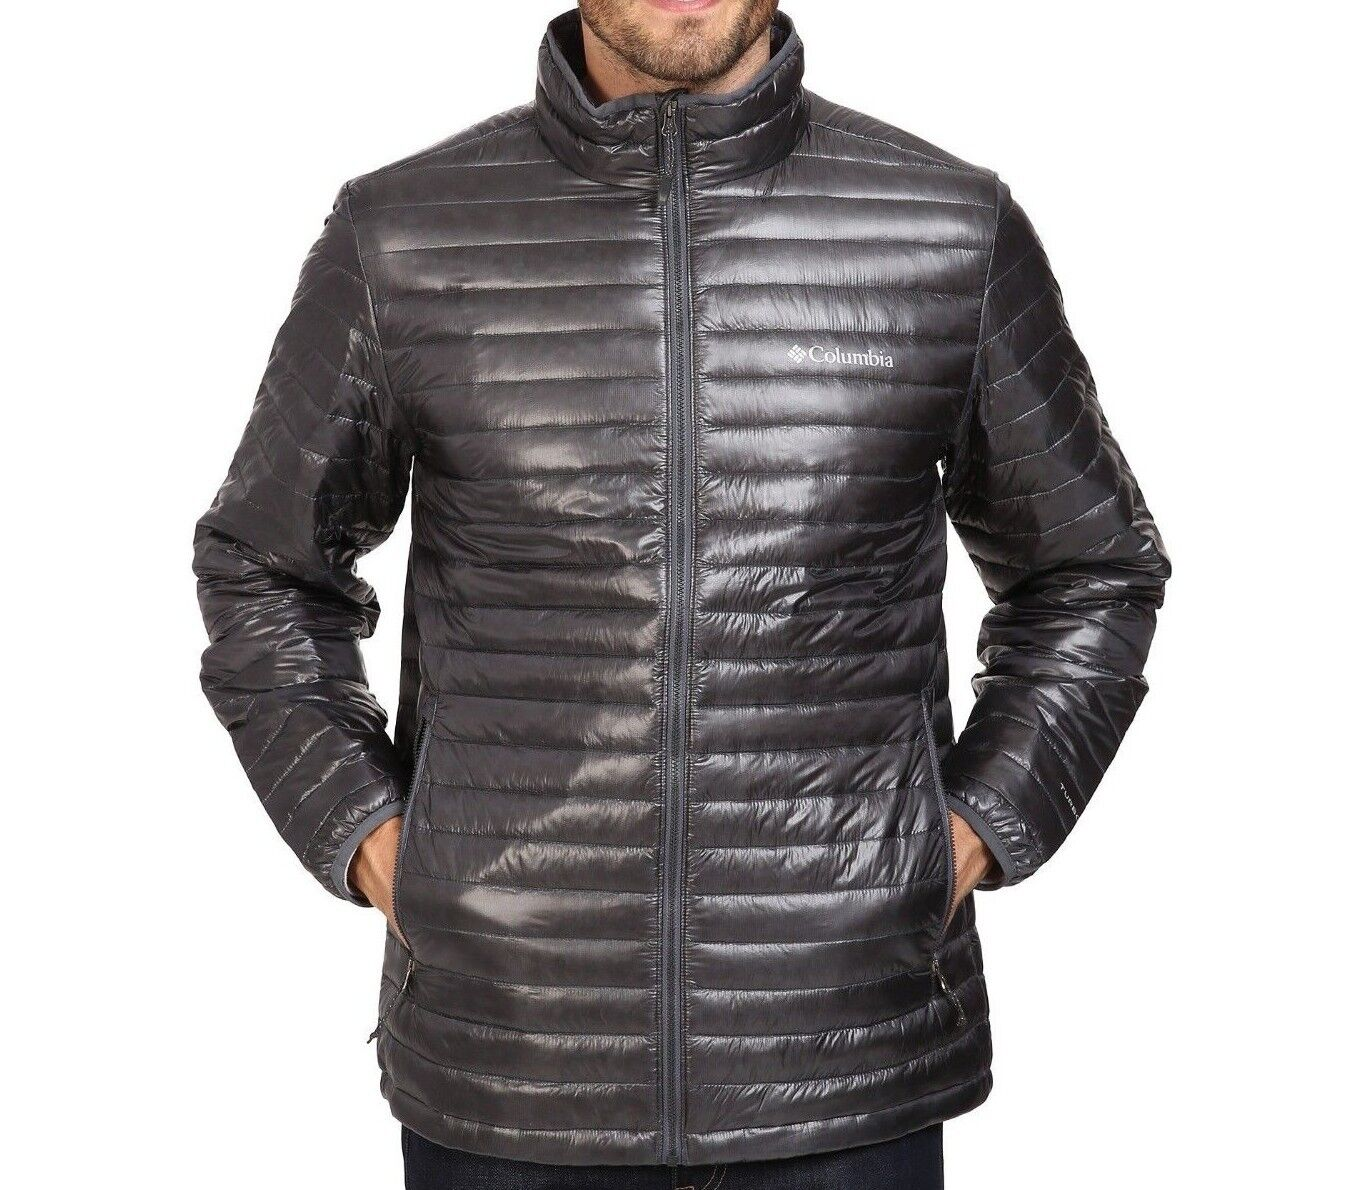 Columbia MEN'S Platinum Plus 740 TurboDown Jacket Graphite G